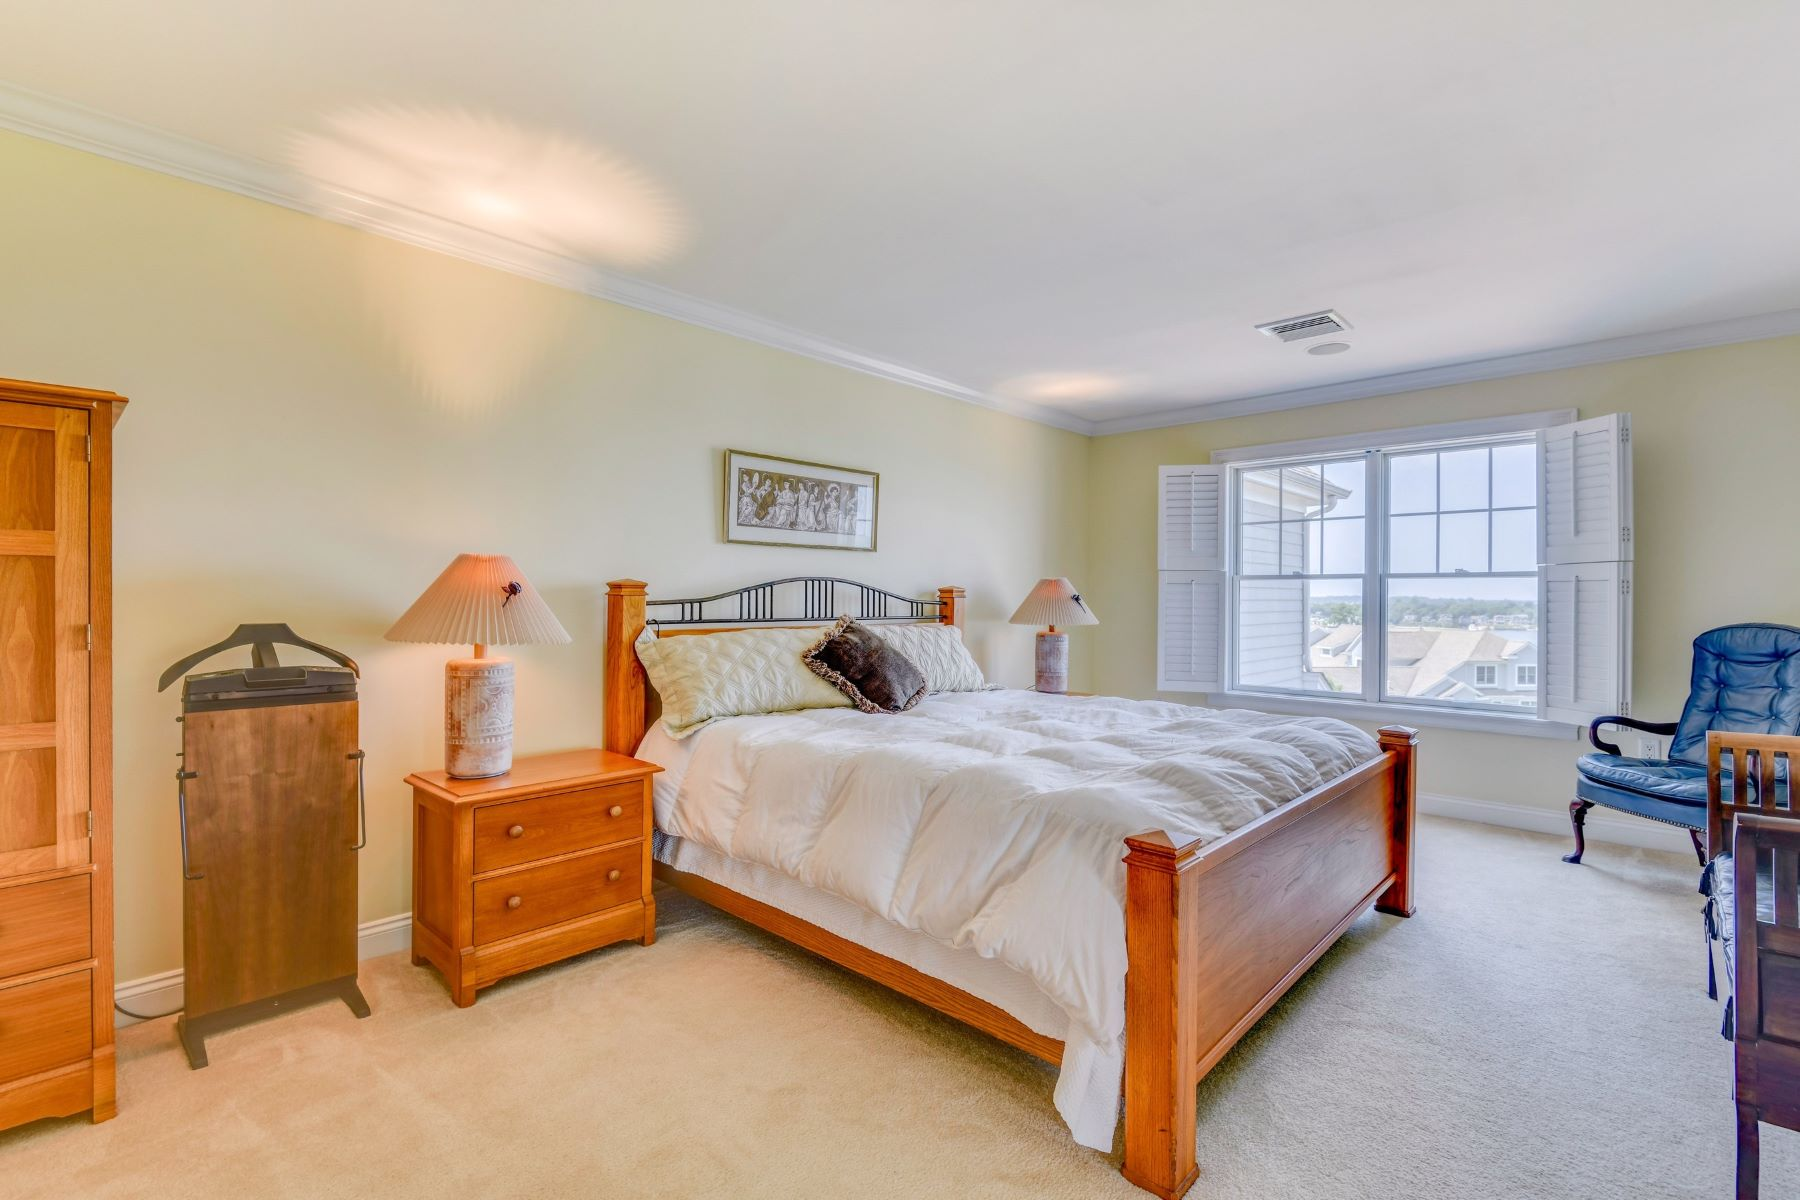 Additional photo for property listing at Luxury Condo with Water View 297 Village Road Tiverton, Rhode Island 02878 United States